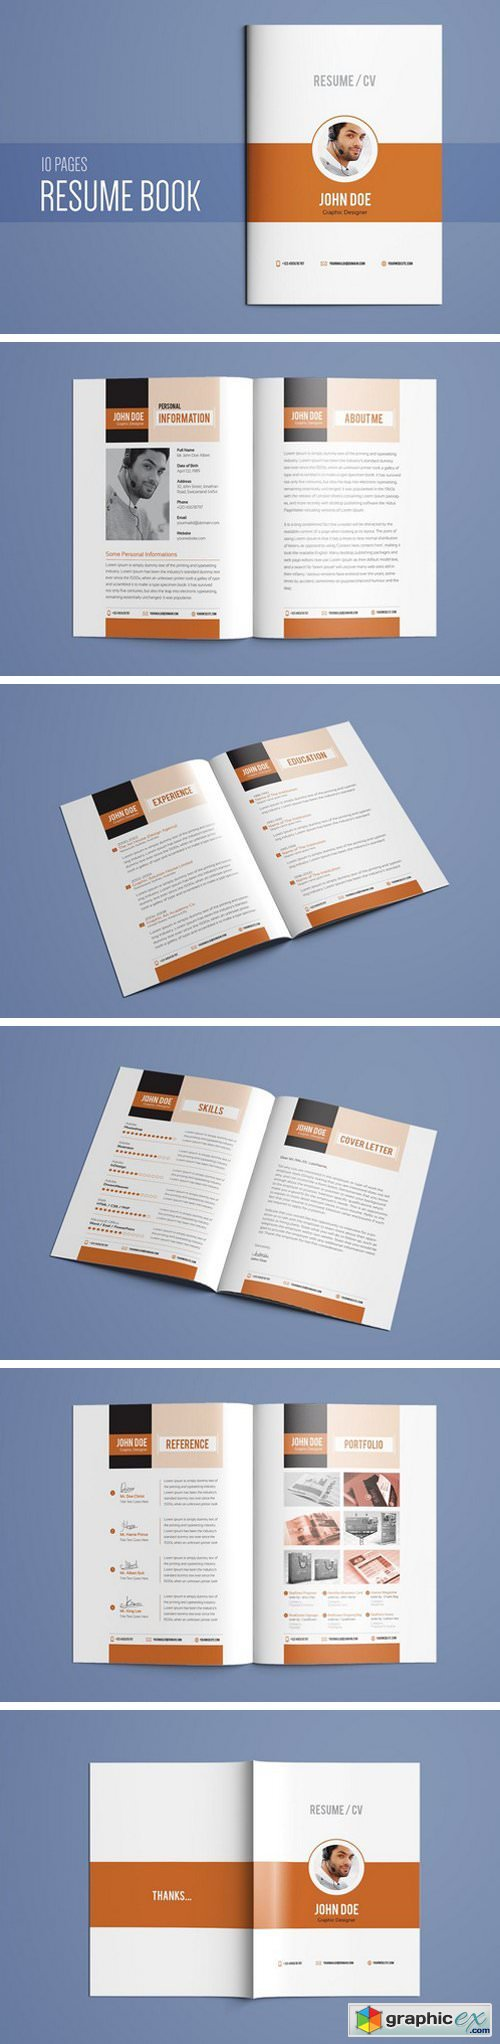 Resume booklet template vol 01 free download vector stock image resume booklet template vol 01 maxwellsz